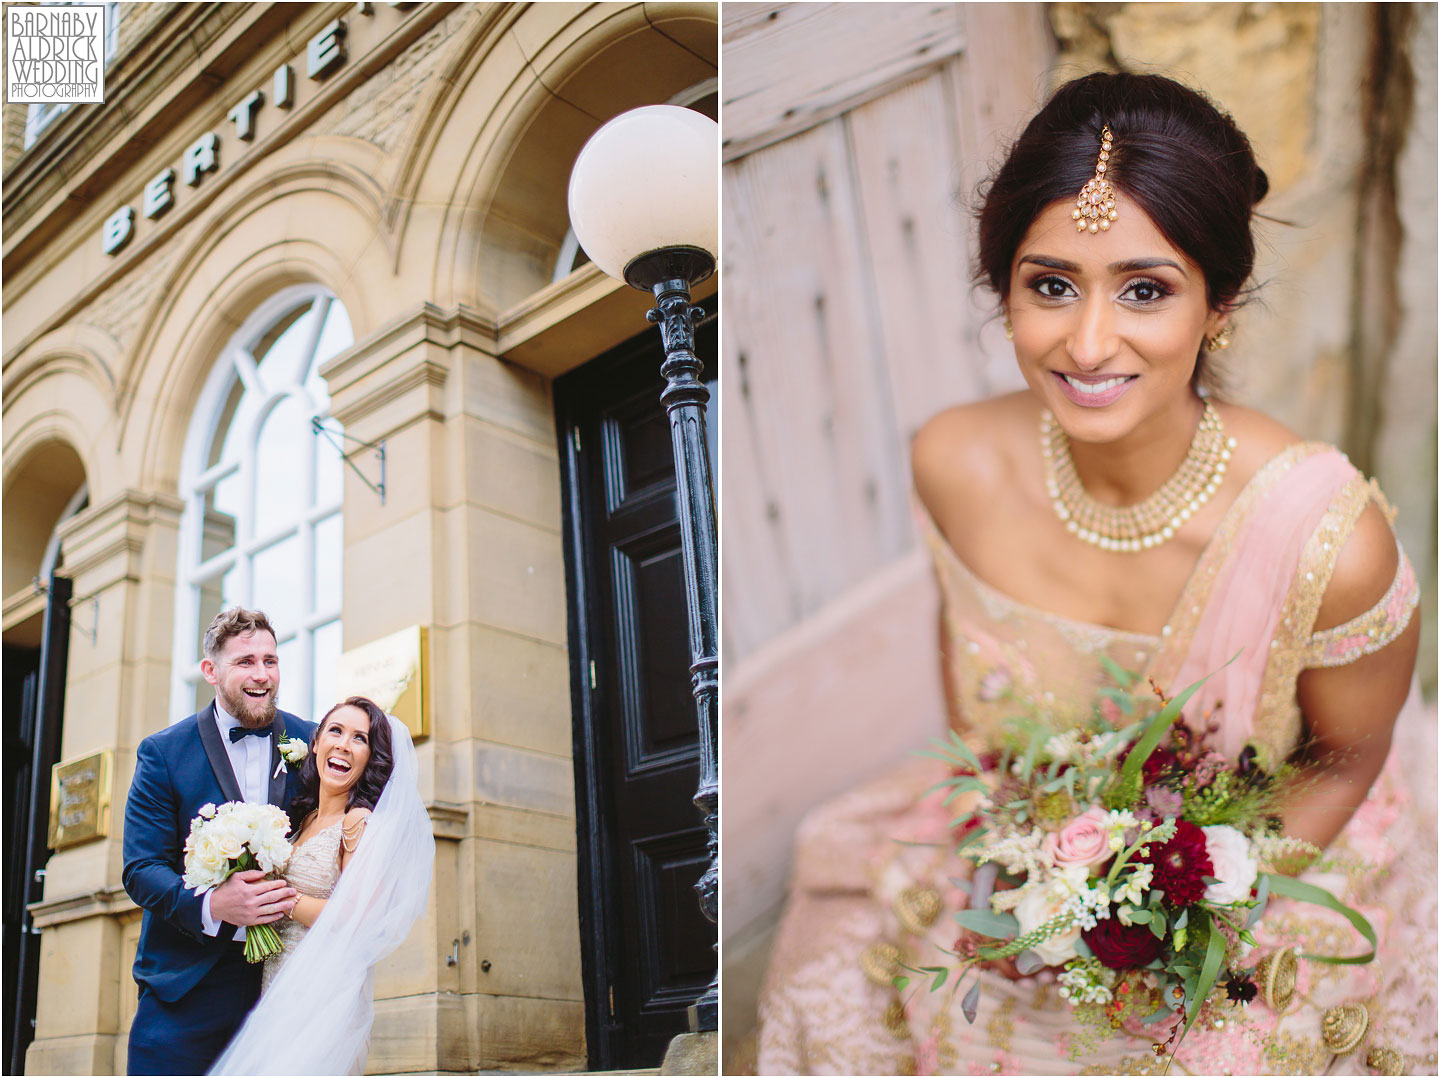 Wedding photography Berties Elland Yorkshire